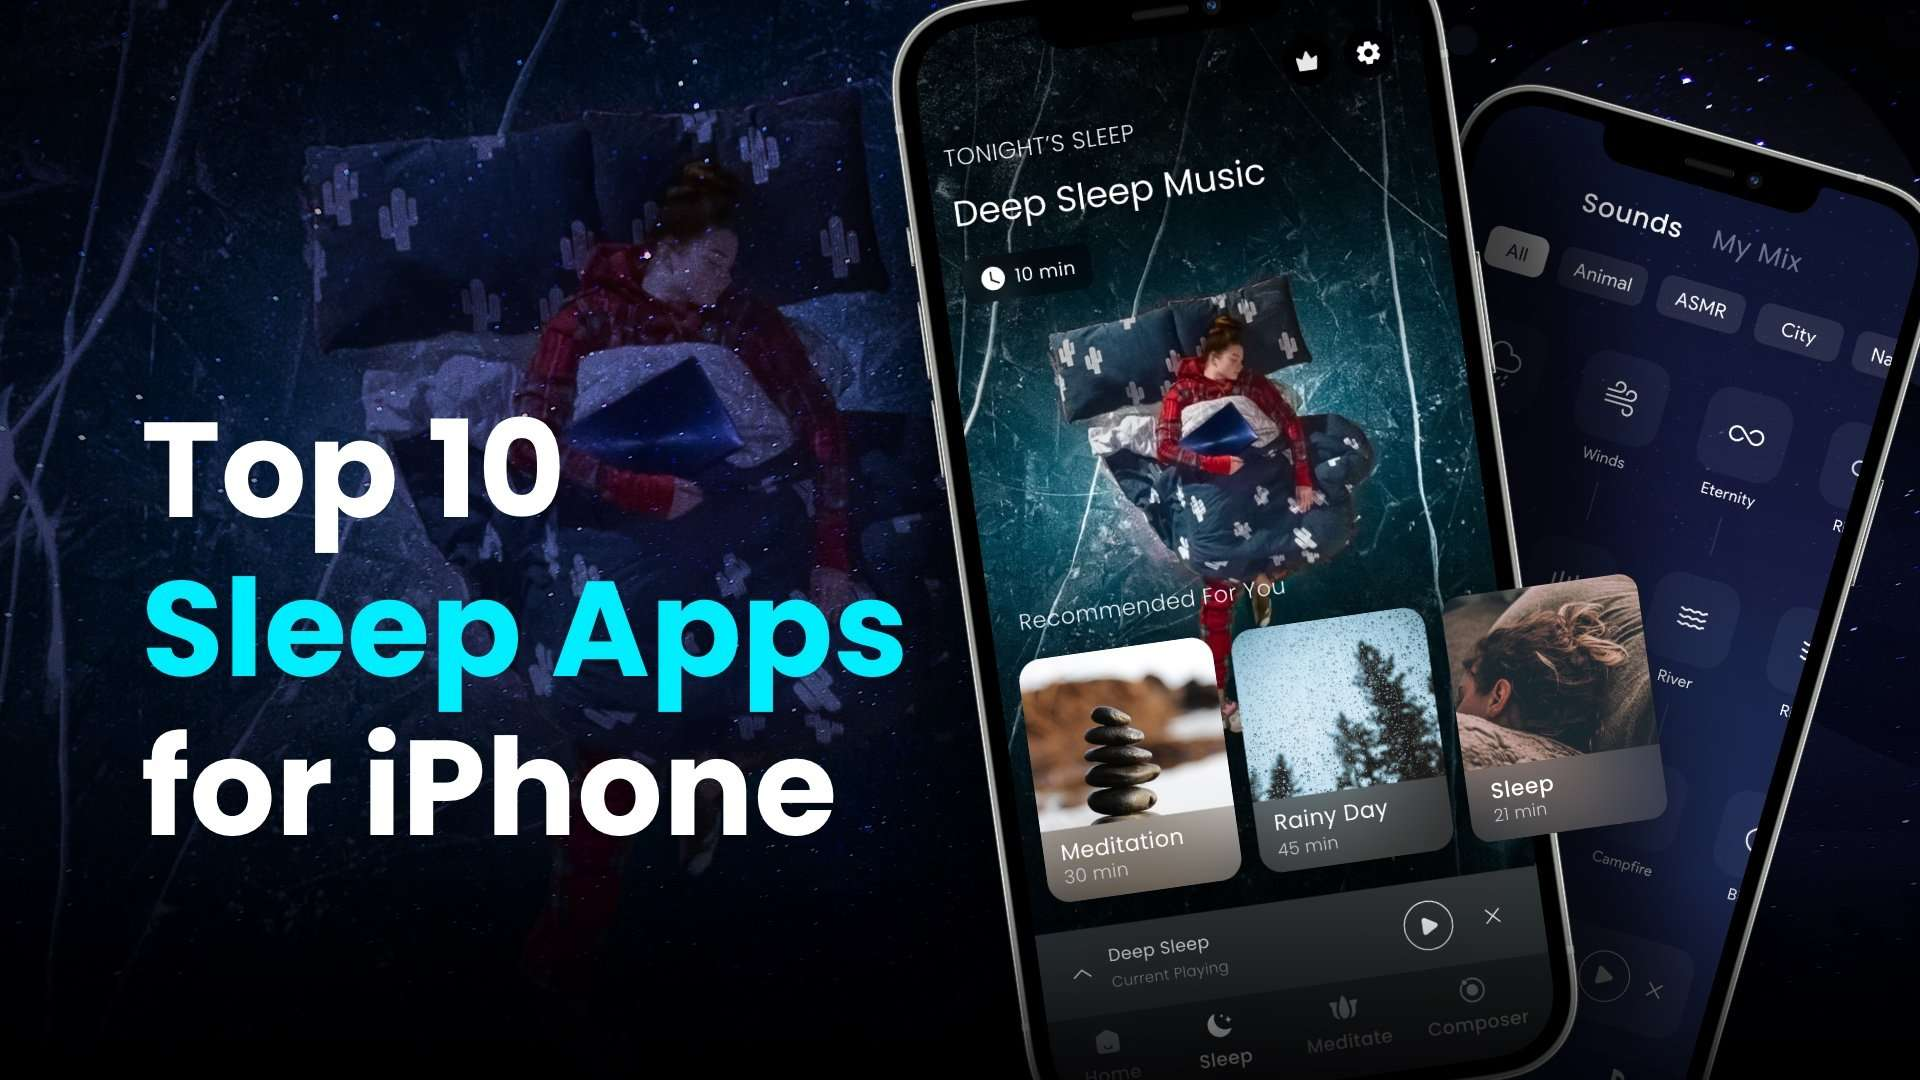 Best Sleep Apps for iPhone